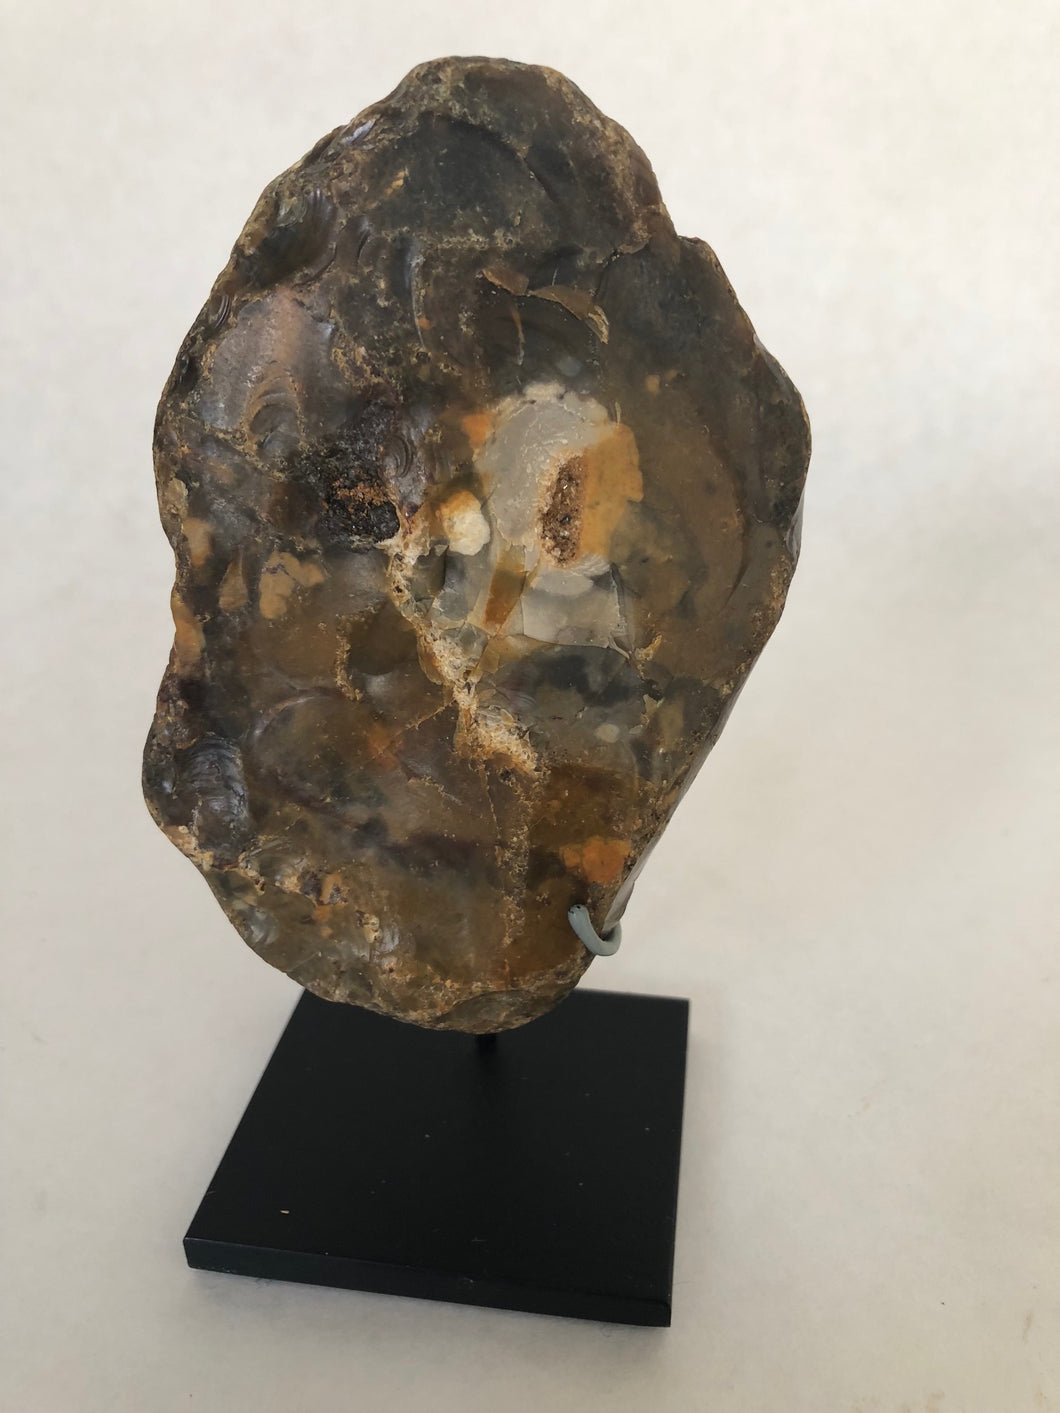 Lower Paleolithic Handaxe with Quartz Micro Crystal Eyes